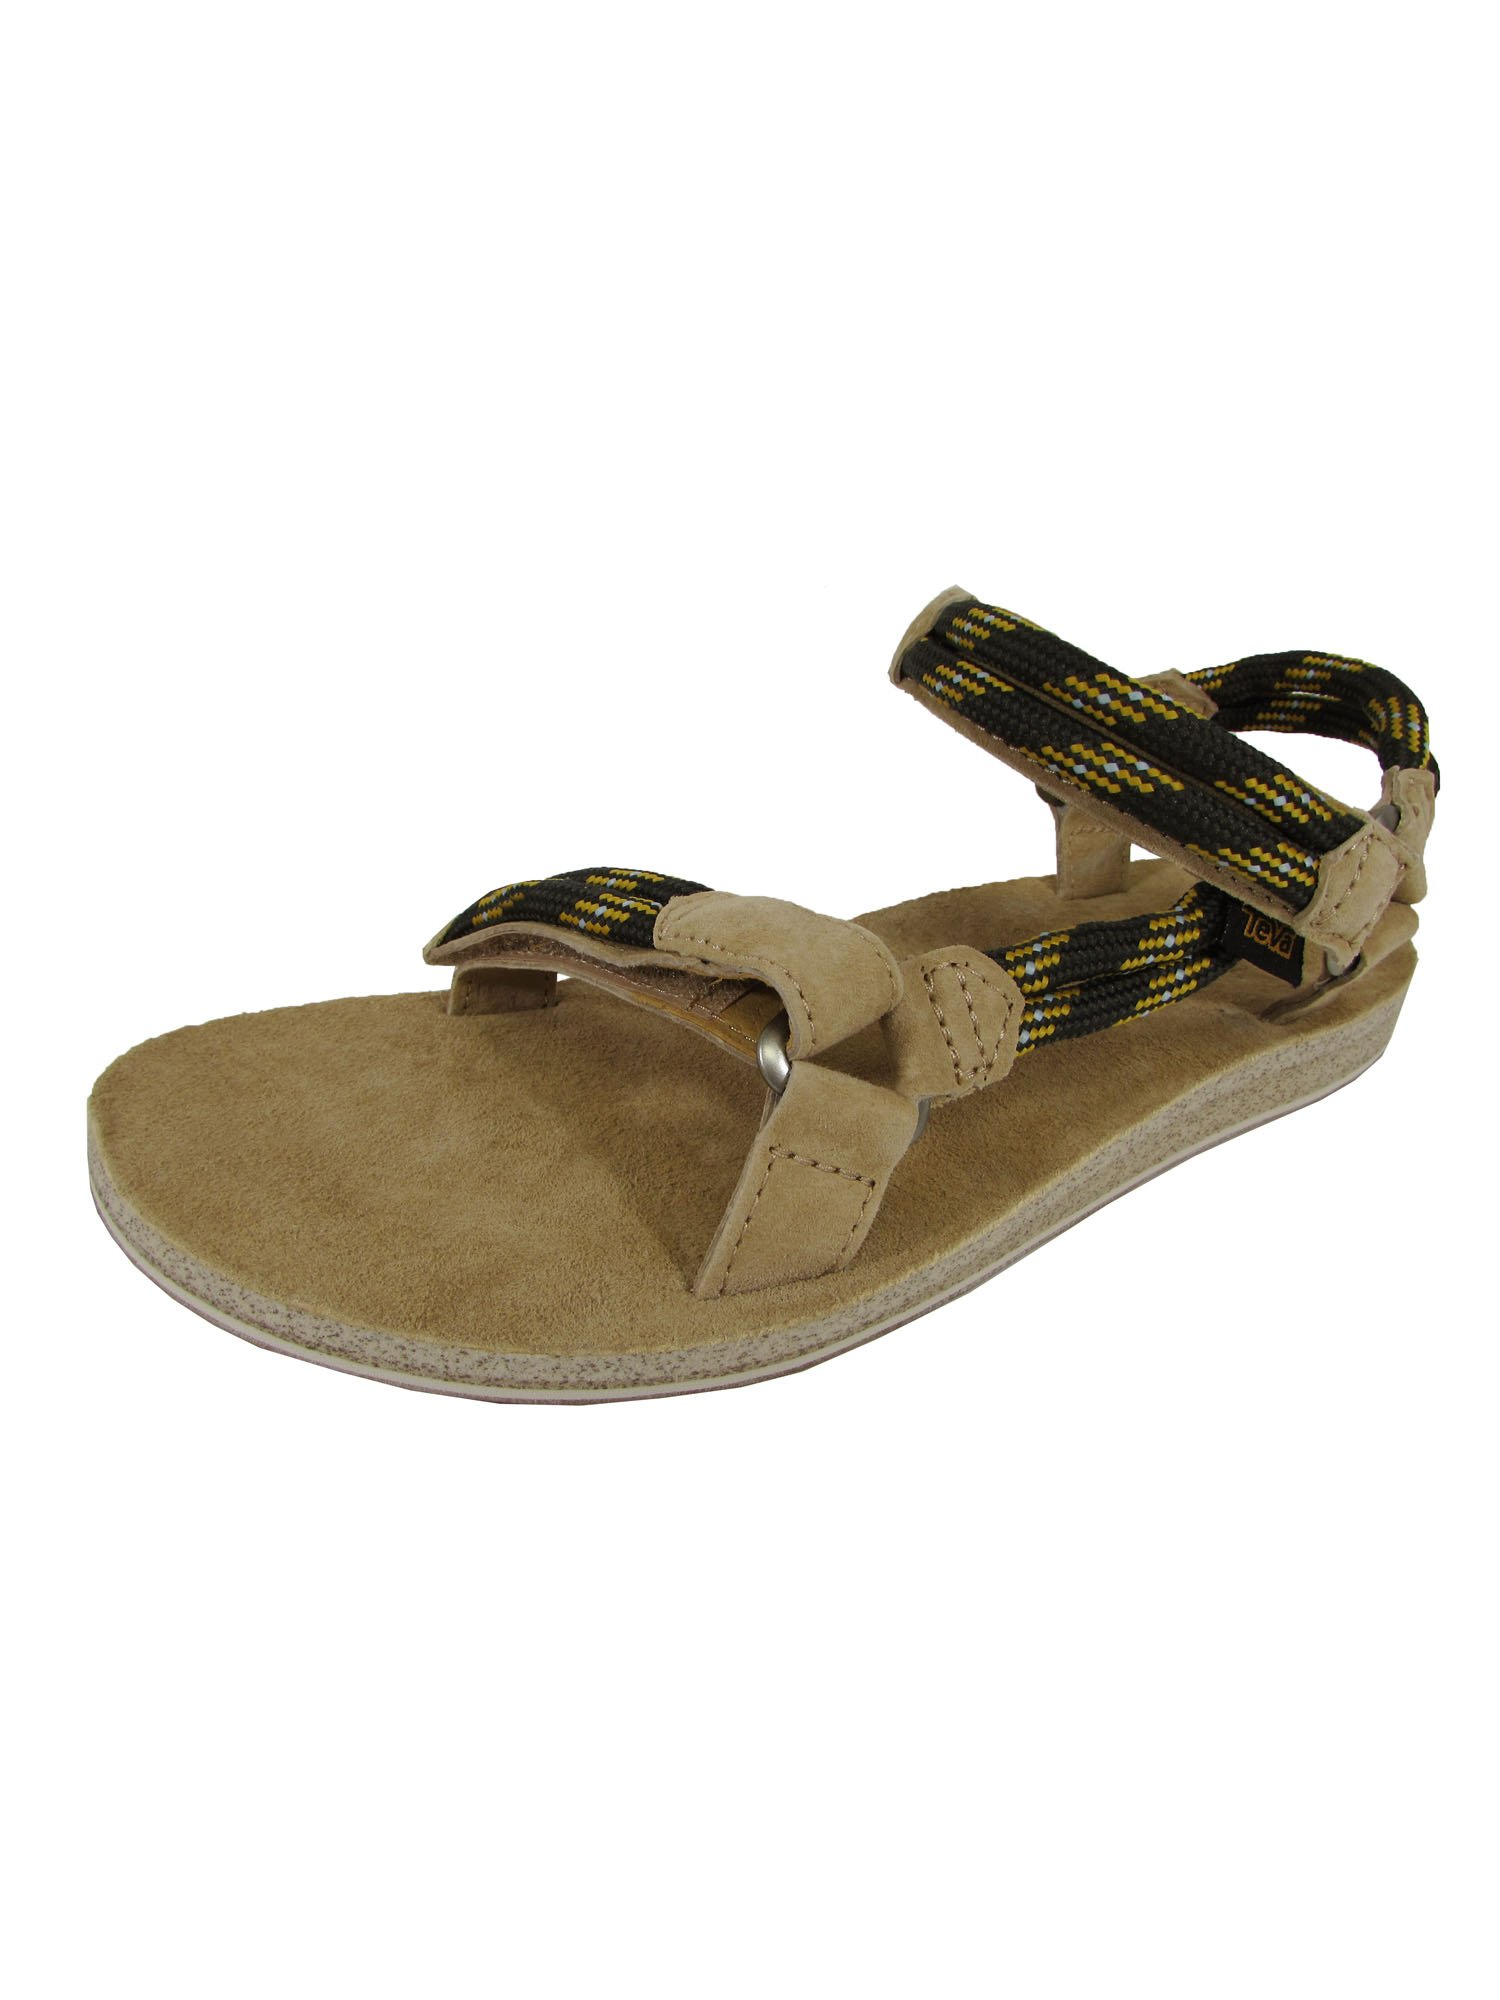 Teva Womens Original Universal Rope Sport Sandal Shoes, Black Olive, US 10